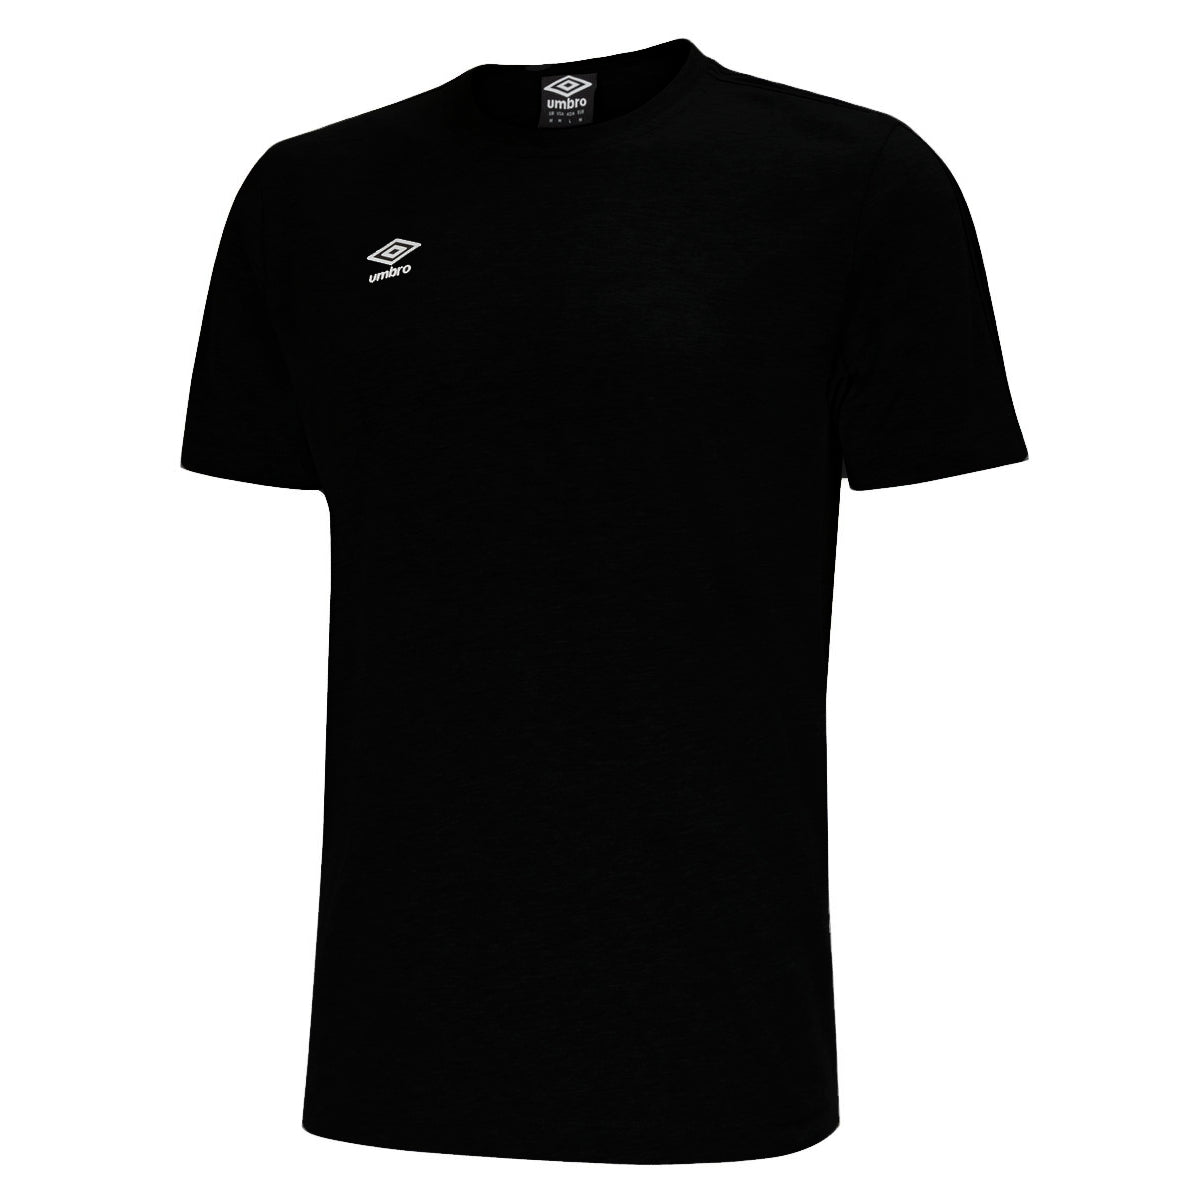 Umbro Pro Taped Tee in black